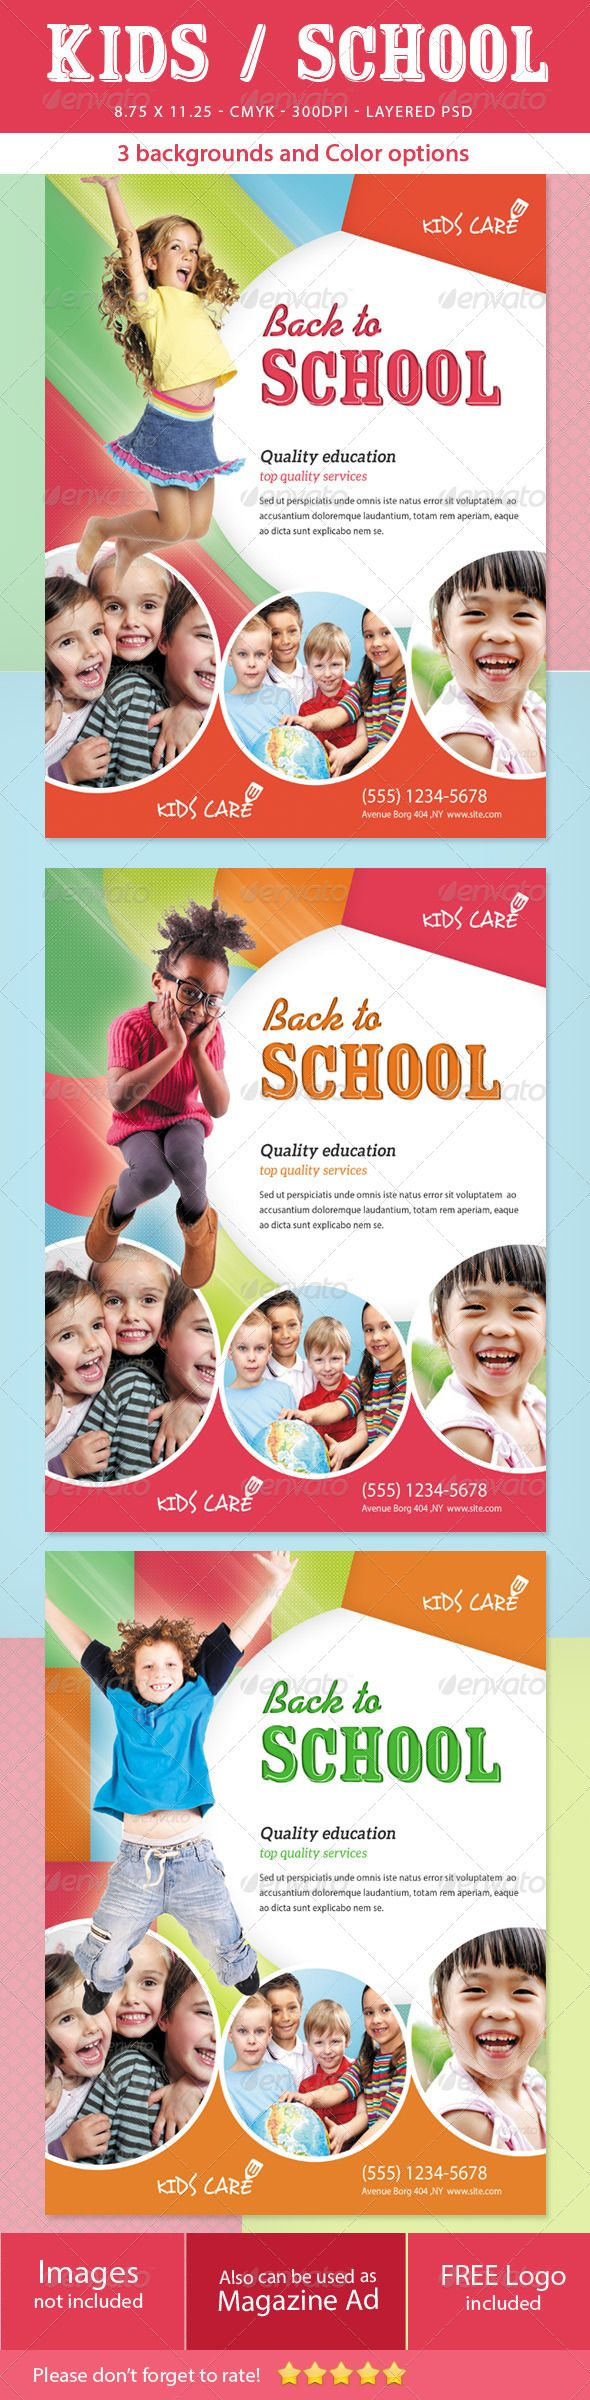 childcare nursery flyer design templates design and flyer template kids school flyer